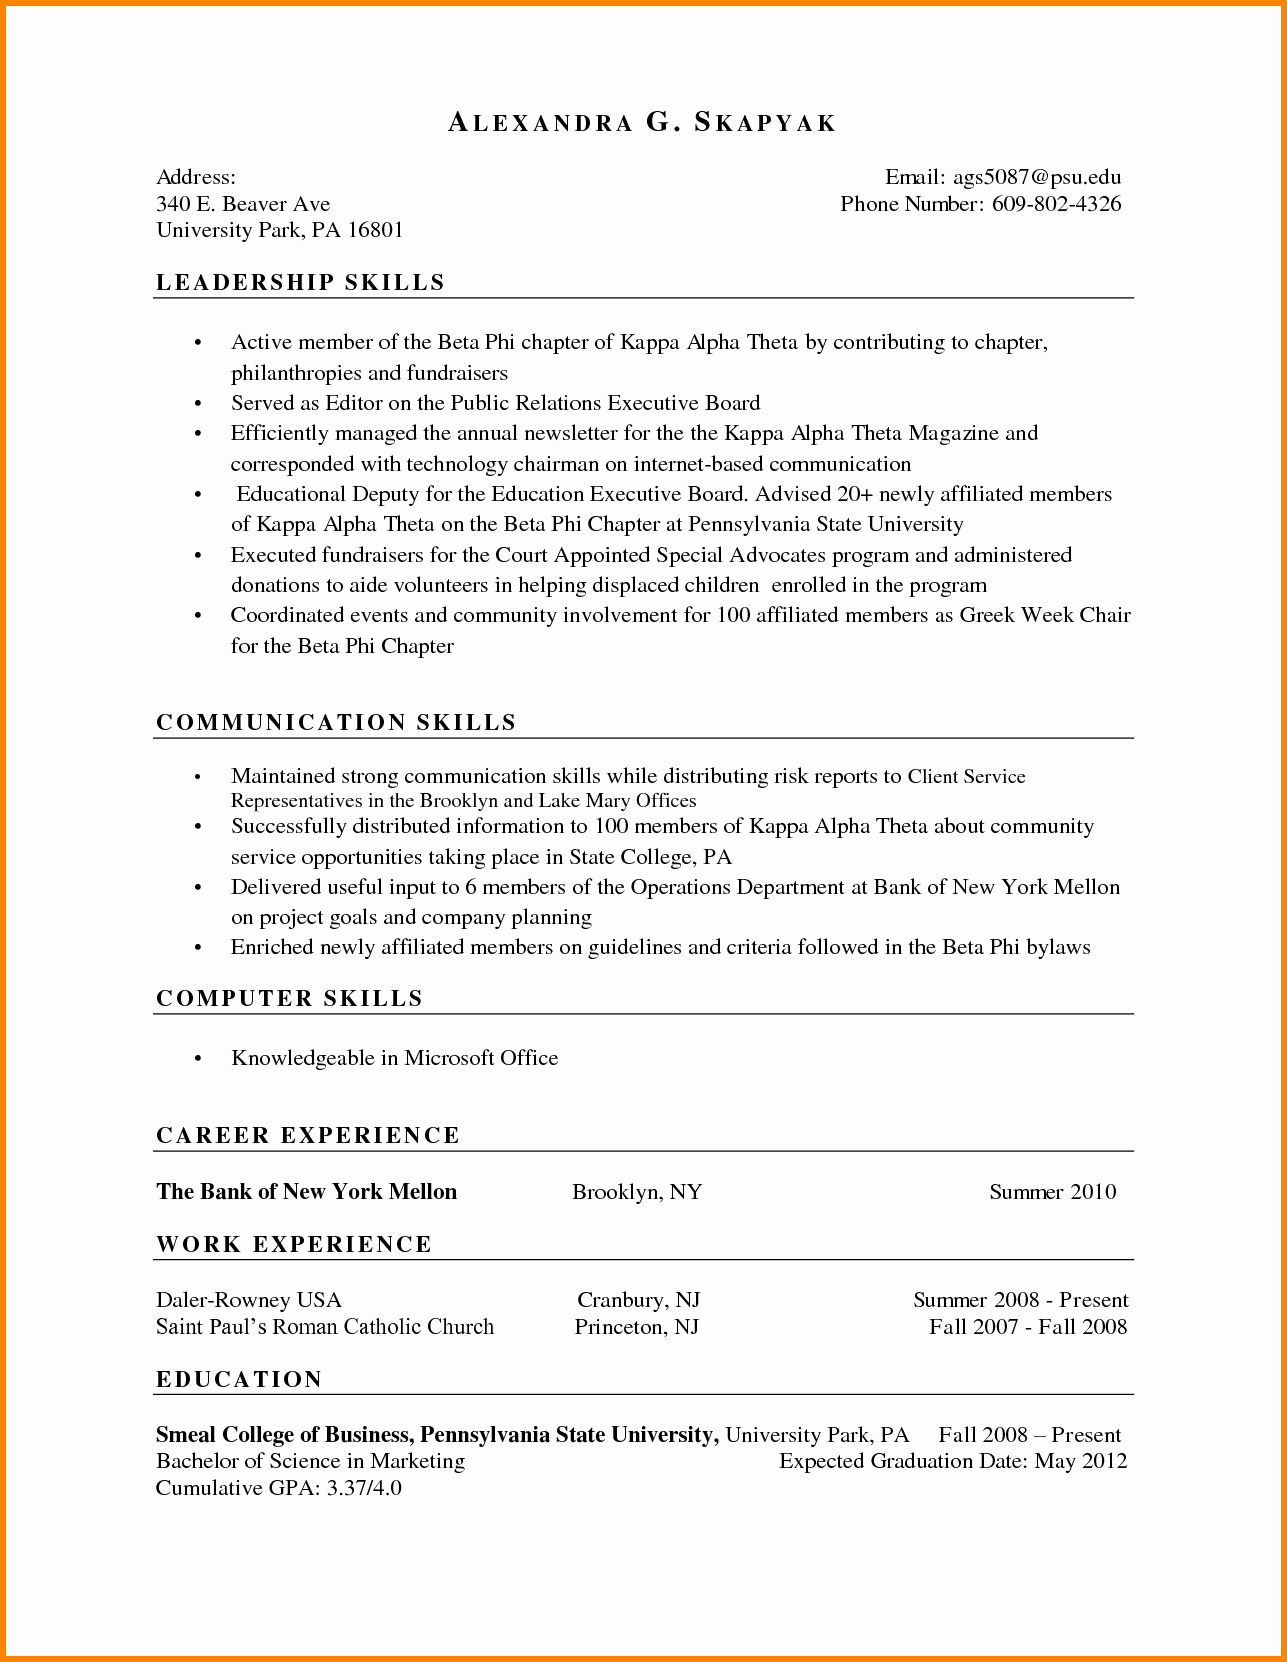 Skills Based Resume Template Free Unique 8 Example Of A Skills Based Cv Resume Template Free Resume Template Job Resume Examples Skills based resume template word